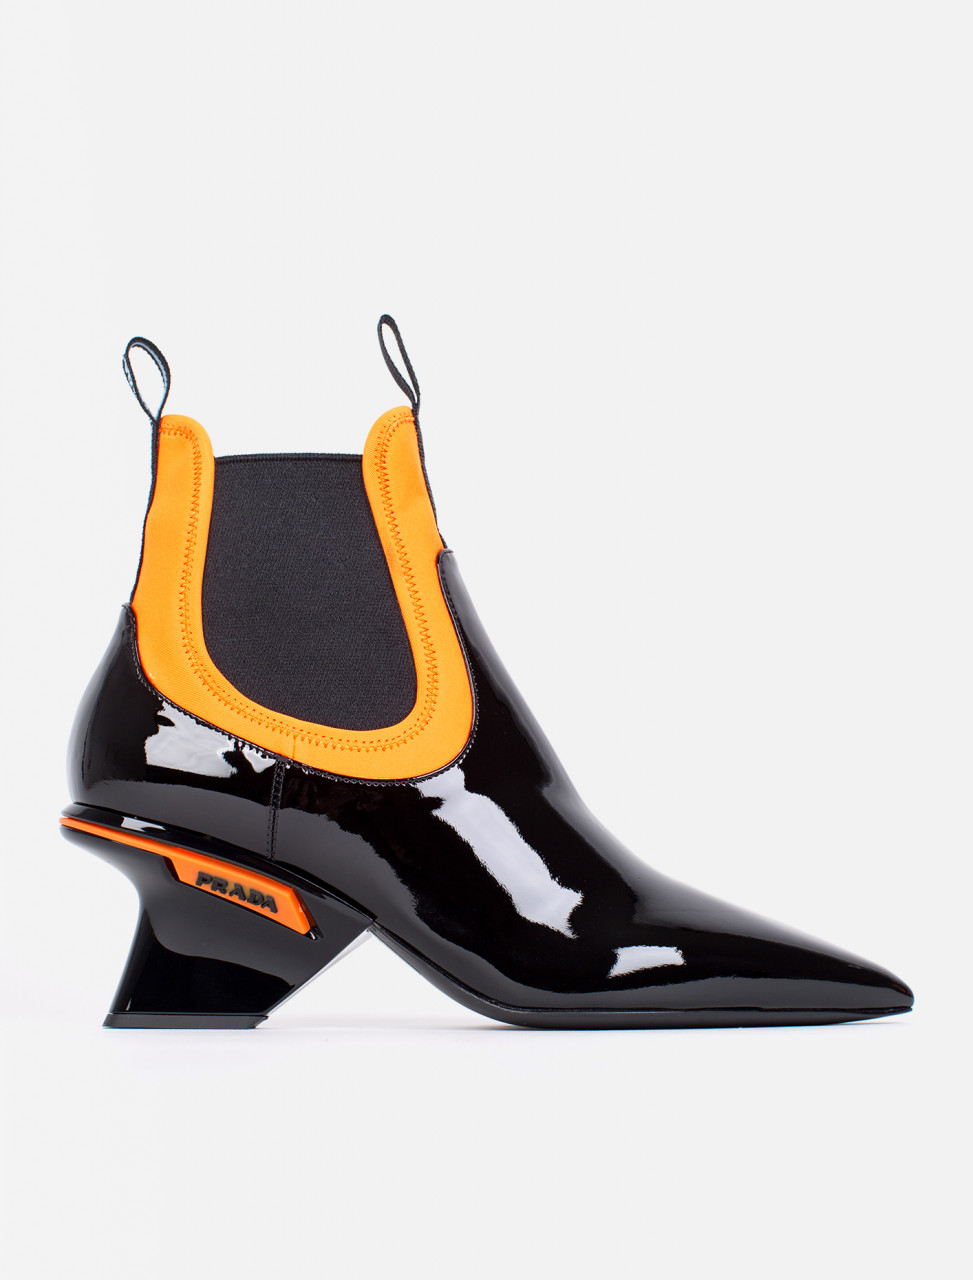 Patent Leather Neoprene Boots